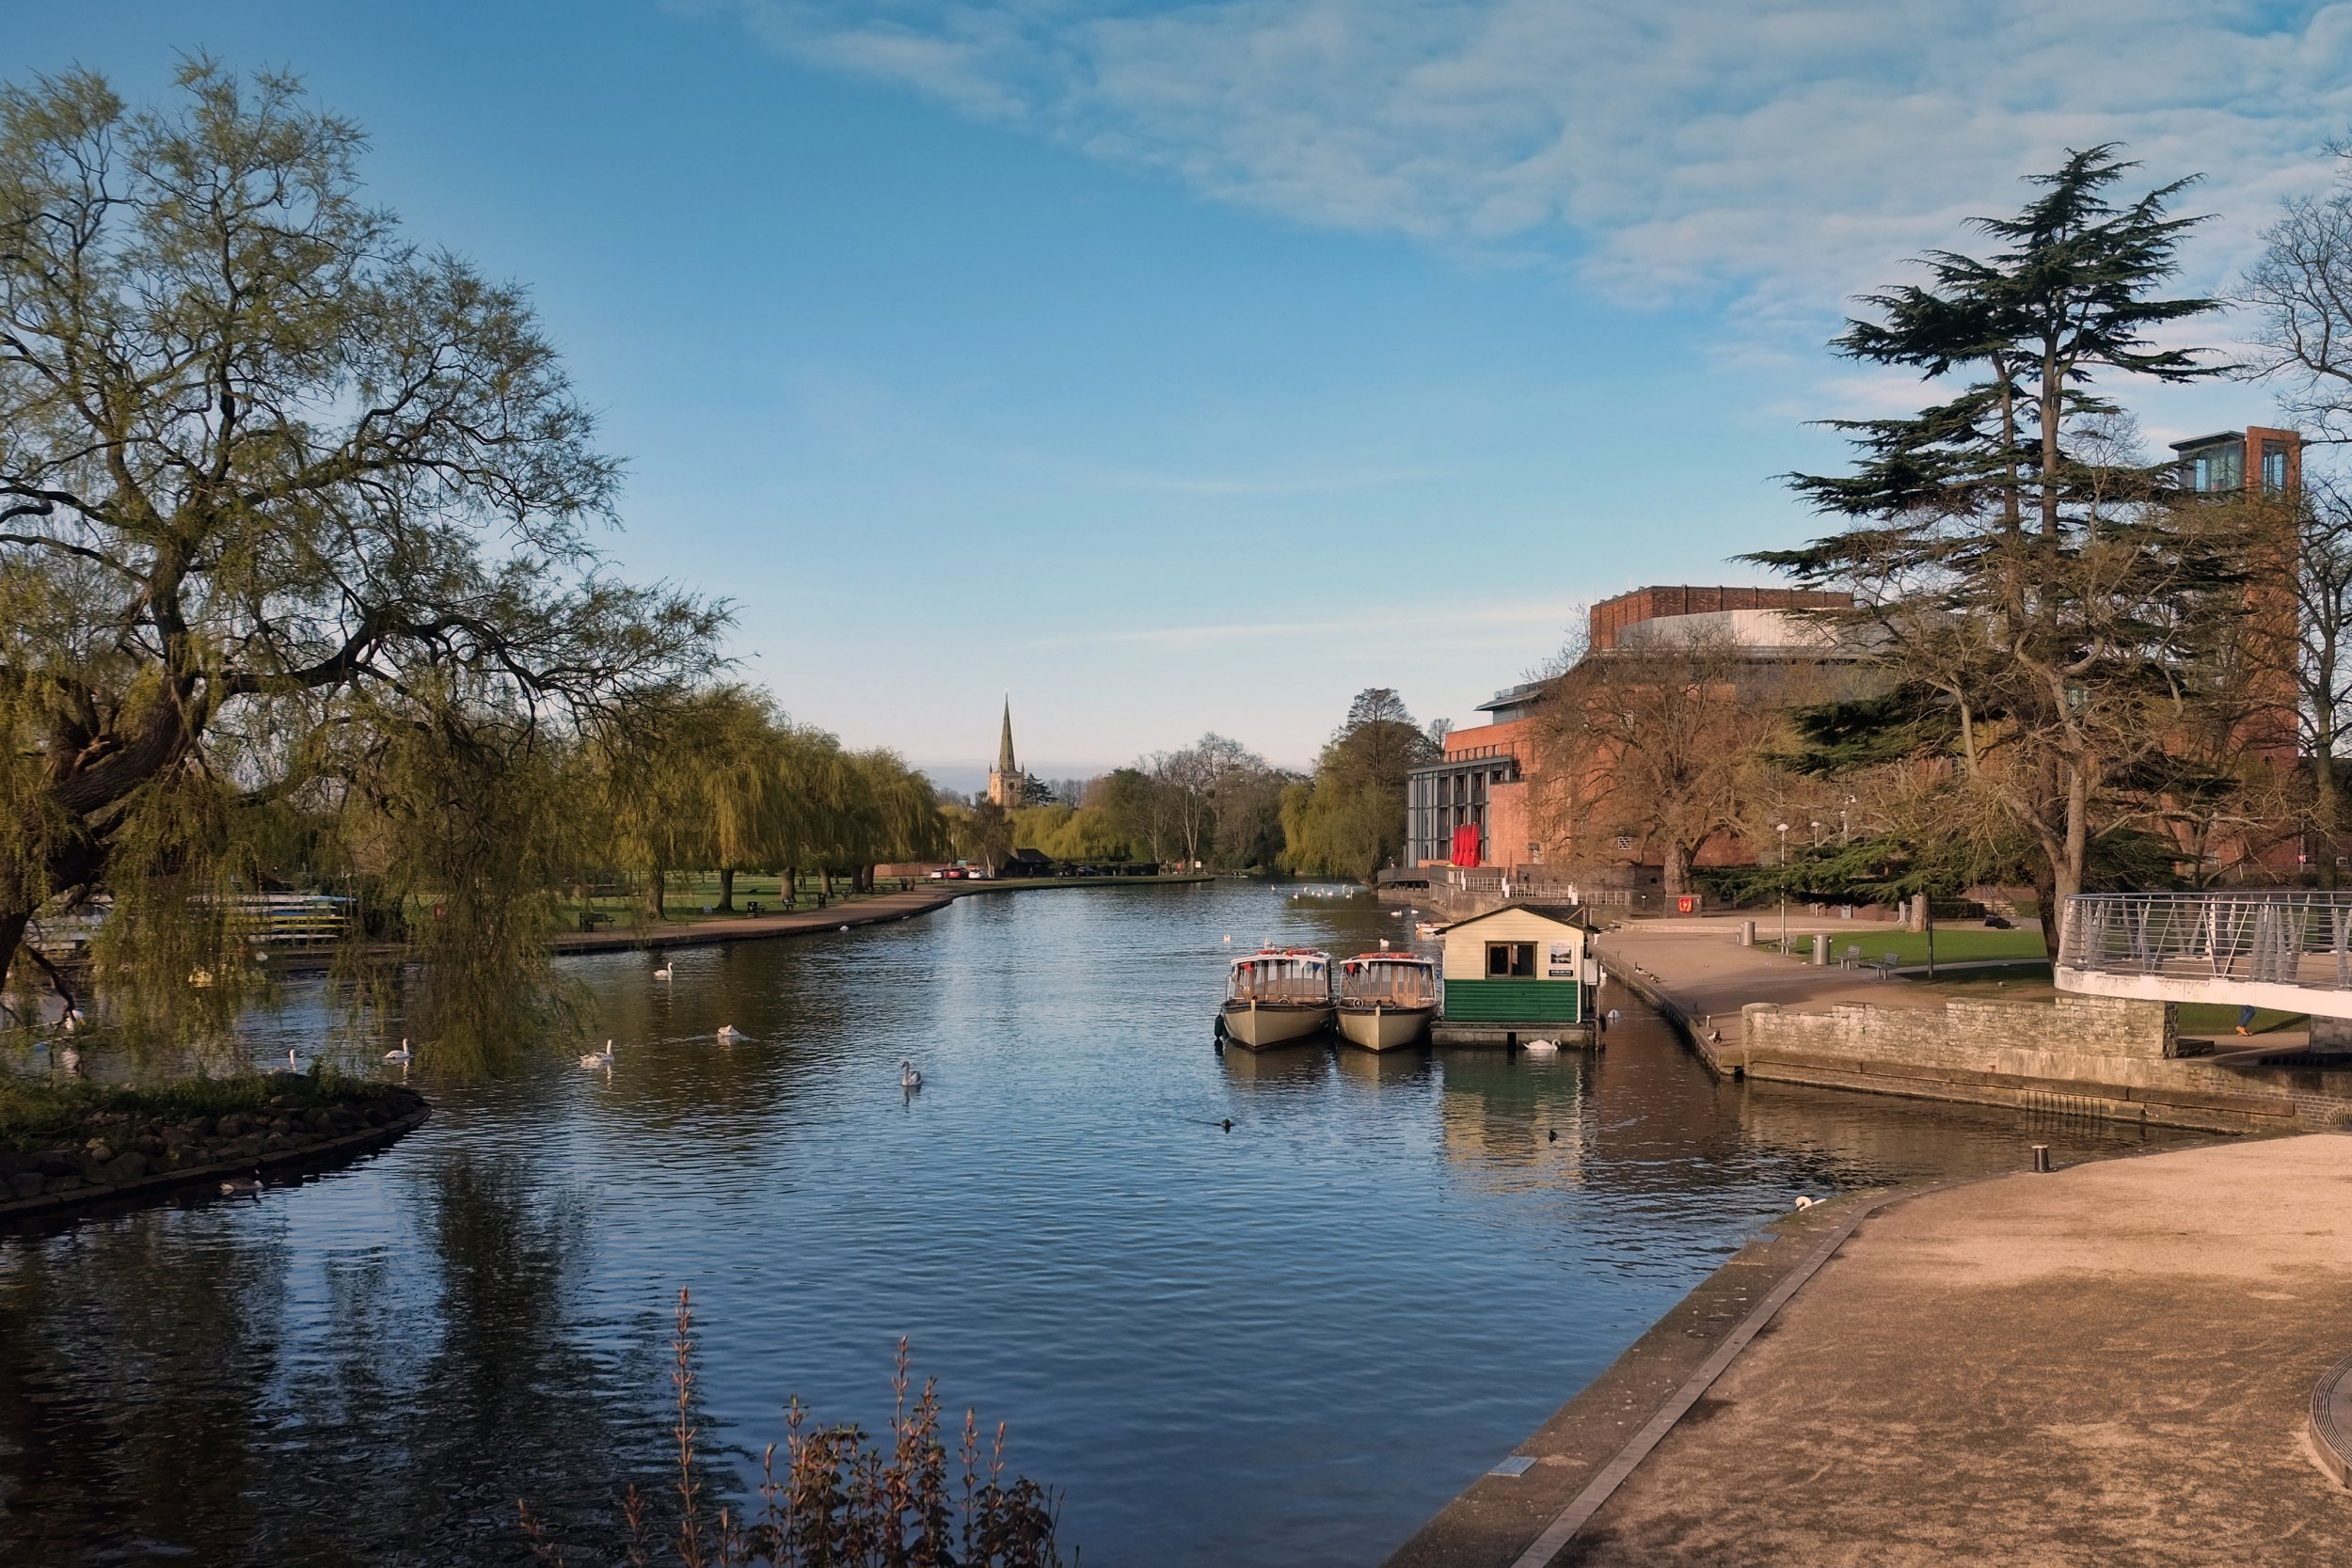 General perspective of a River Avon during Stratford-upon-Avon, with a Royal Shakespeare Theatre and a Holy Trinity Church in a background.